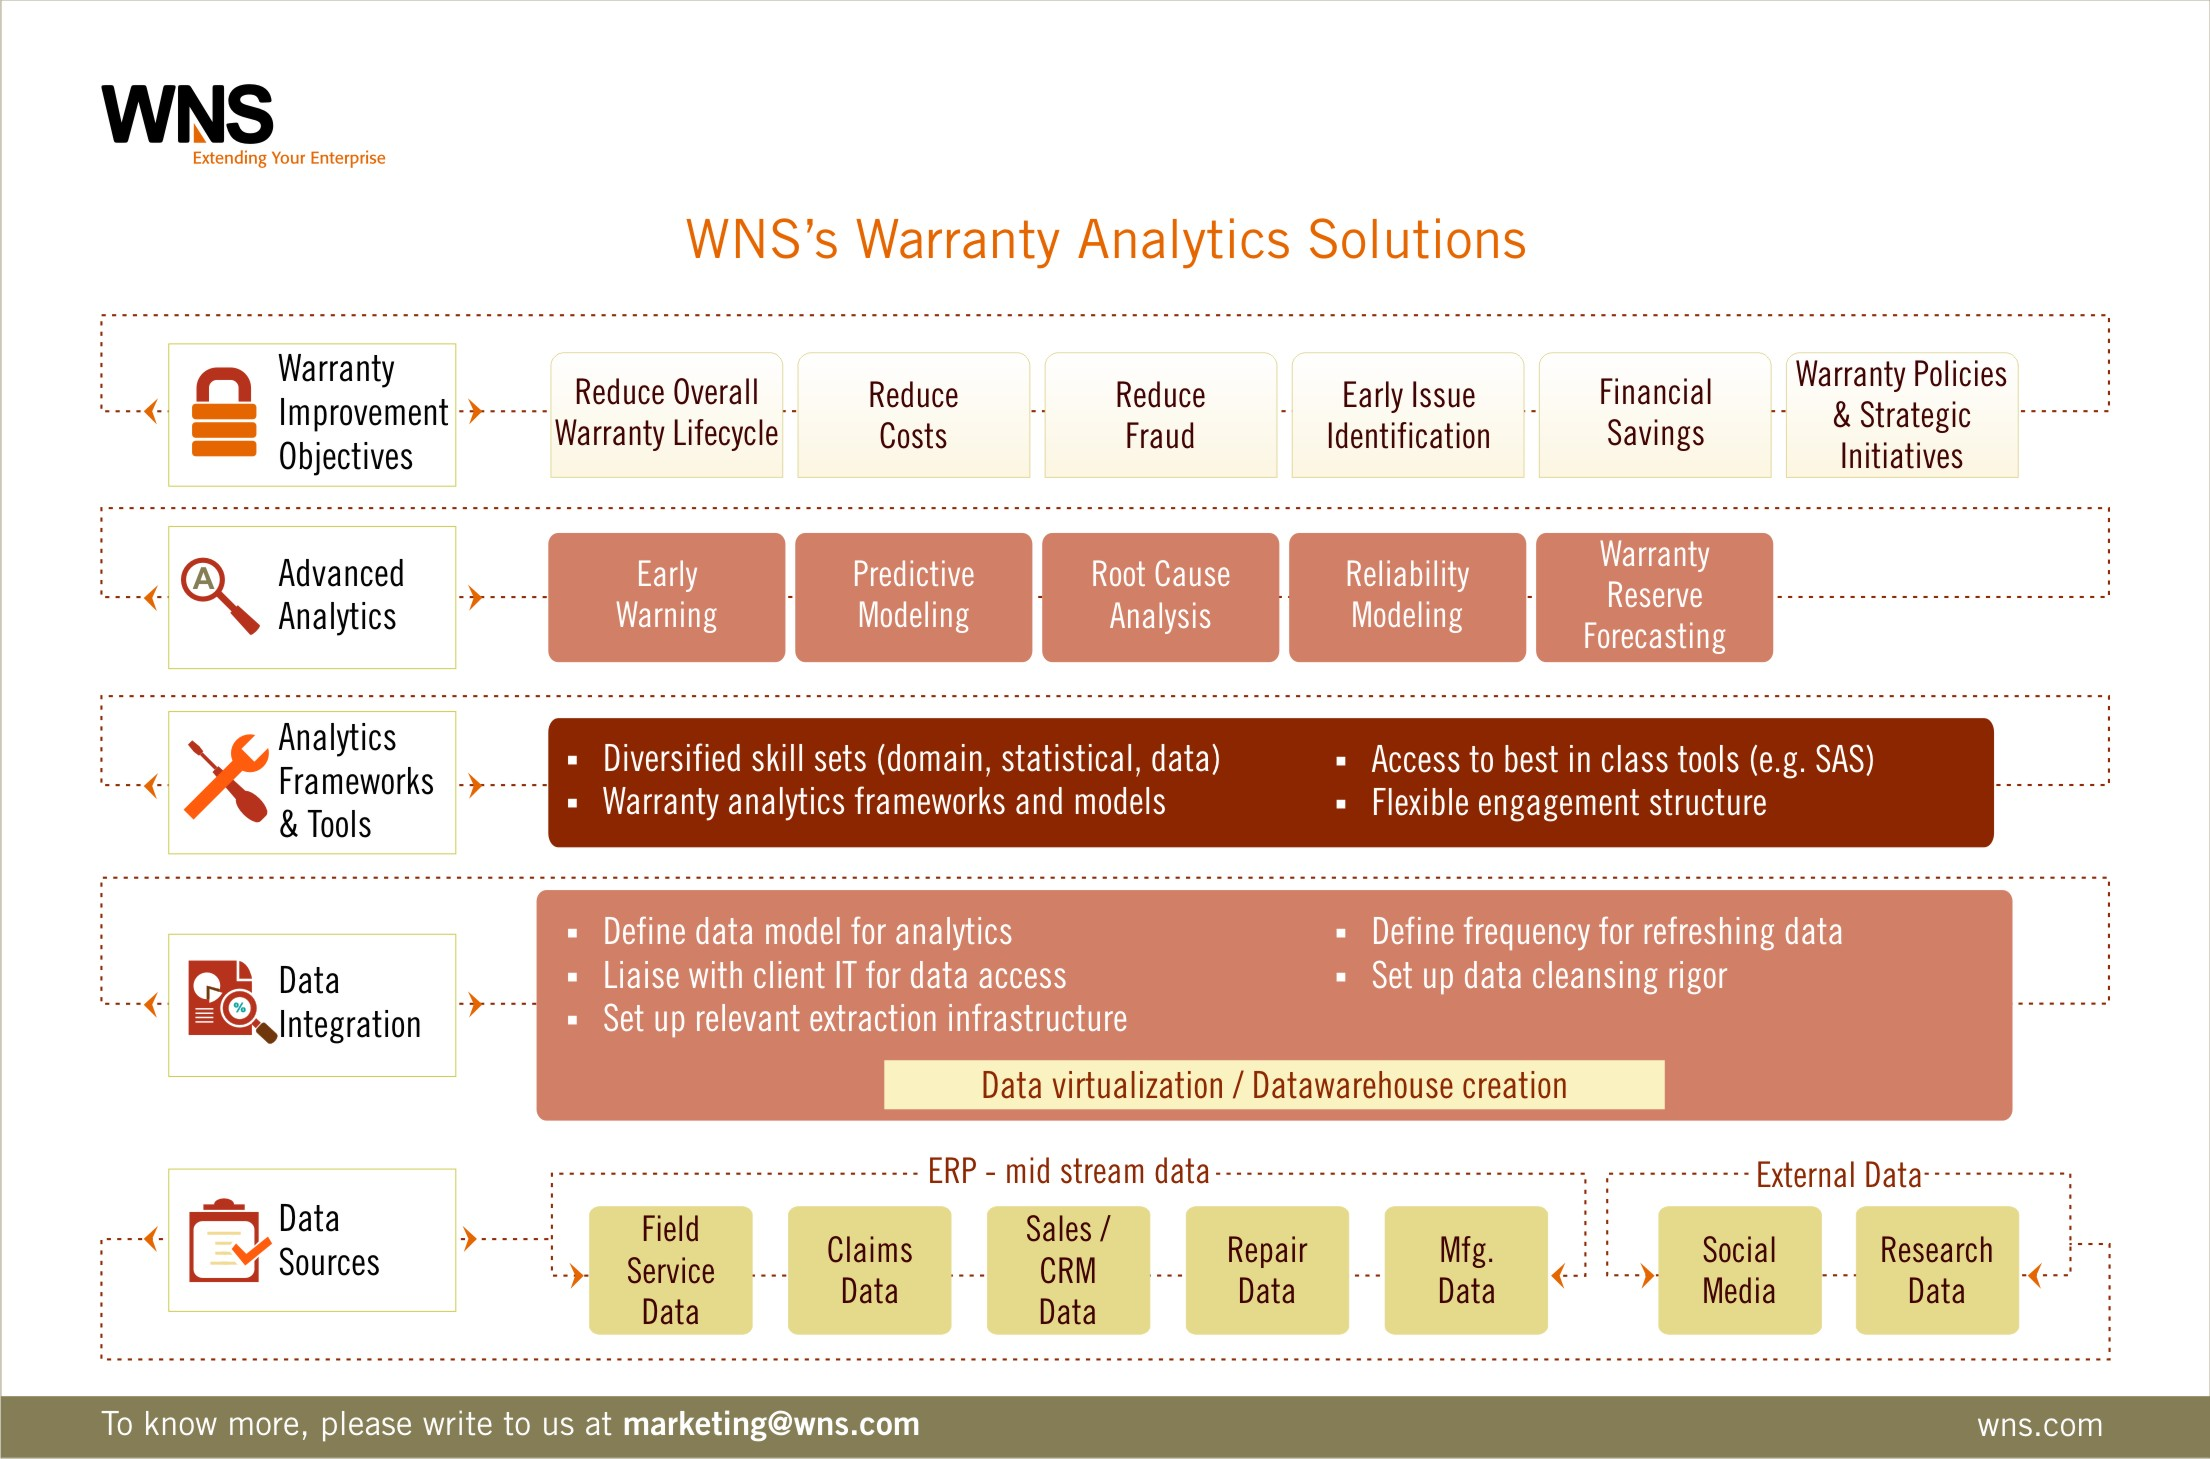 WNS's Warranty Analytics Solution